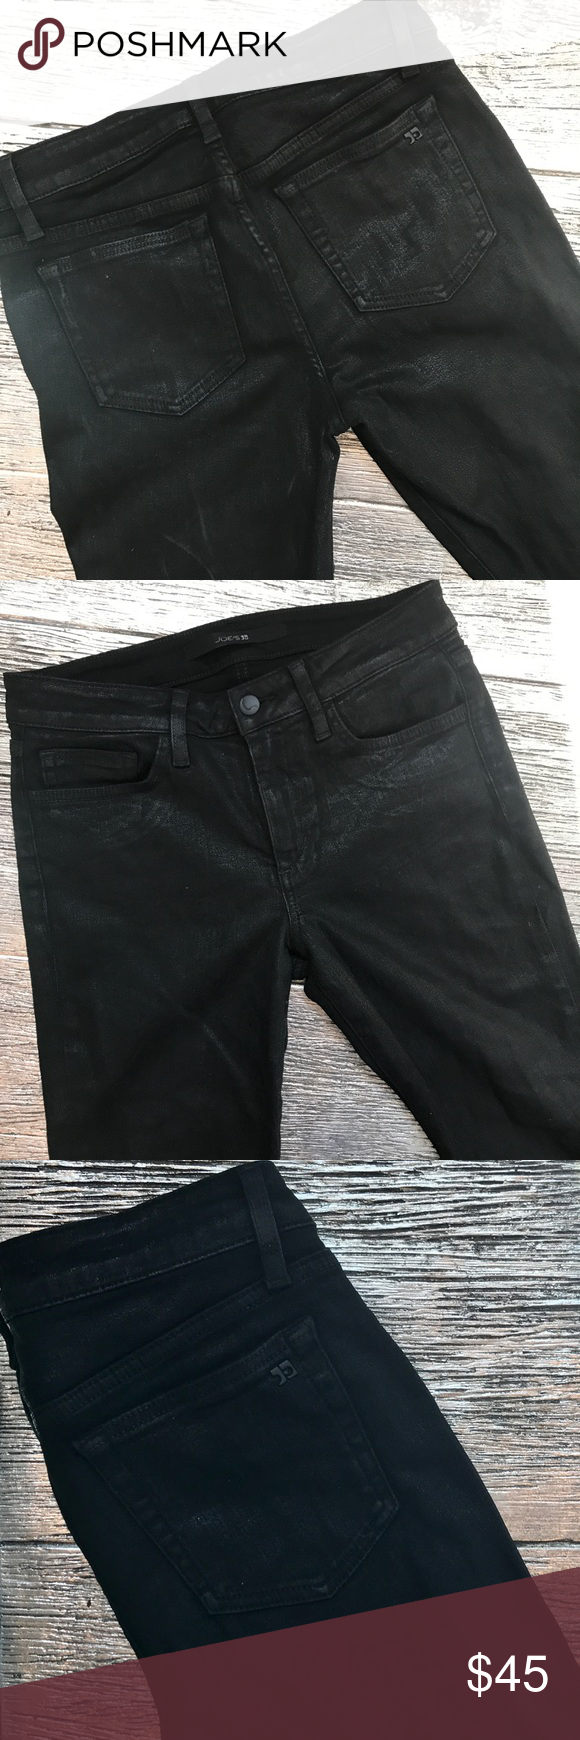 JOE'S JEANS Coated Skinny Ankle Jeans - New A slick coating lends a leather-like feel to these 5-pocket skinny jeans. Button closure and zip fly. Black. NWOT Joe's Jeans Jeans Skinny